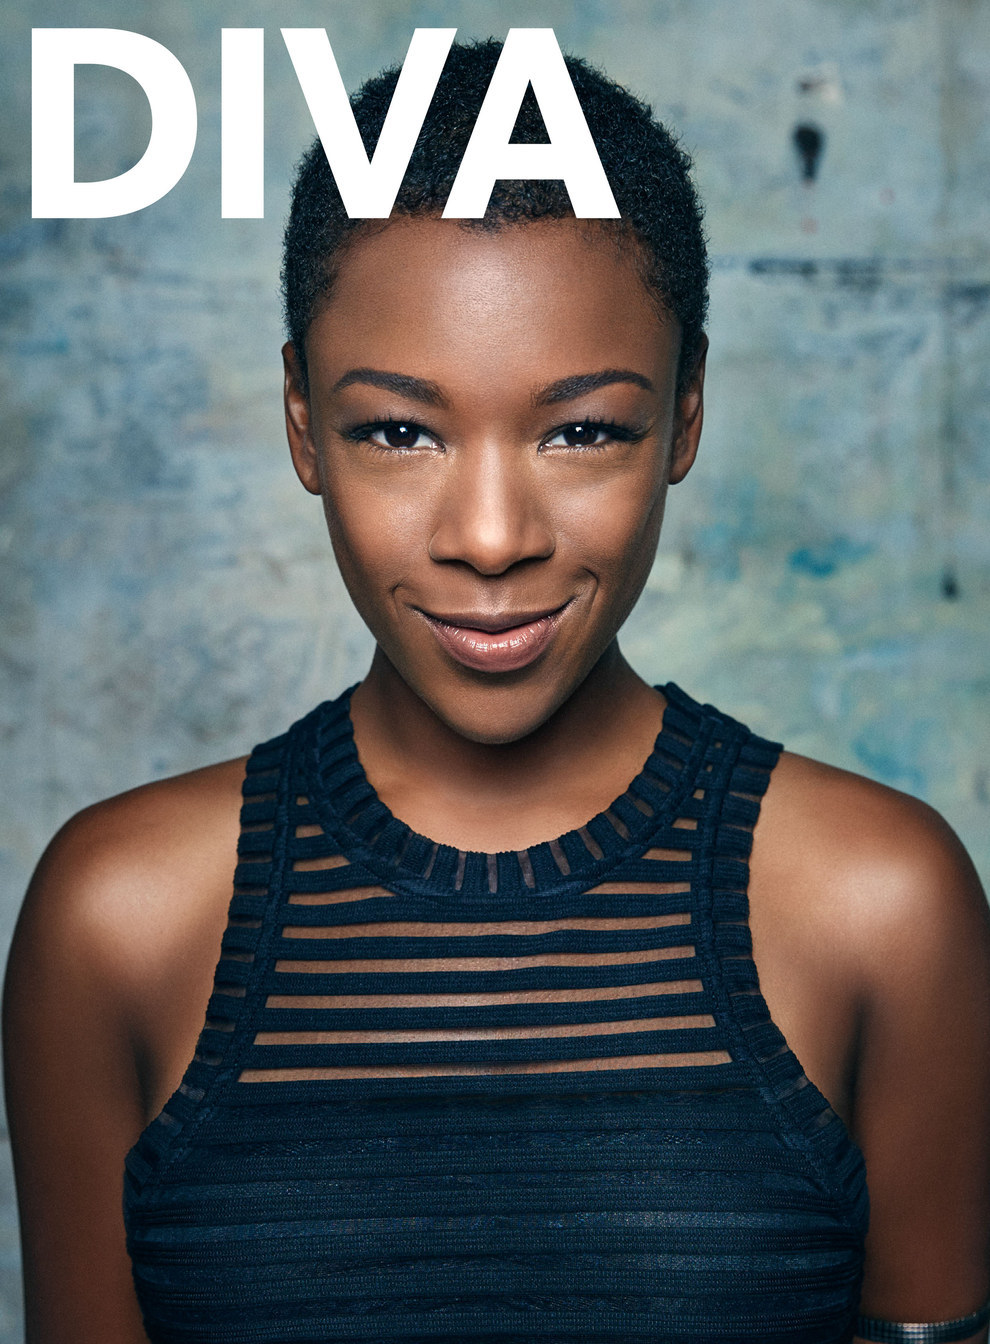 samira wiley nervesamira wiley lip sync battle, samira wiley and lauren morelli dating, samira wiley insta, samira wiley walking dead, samira wiley instagram, samira wiley nerve, samira wiley facebook, samira wiley, samira wiley singing, samira wiley and laura morelli, samira wiley relationship, samira wiley interview, samira wiley orange is the new black, samira wiley wiki, samira wiley imdb, samira wiley height, samira wiley tumblr, samira wiley long hair, samira wiley buzzfeed, samira wiley german